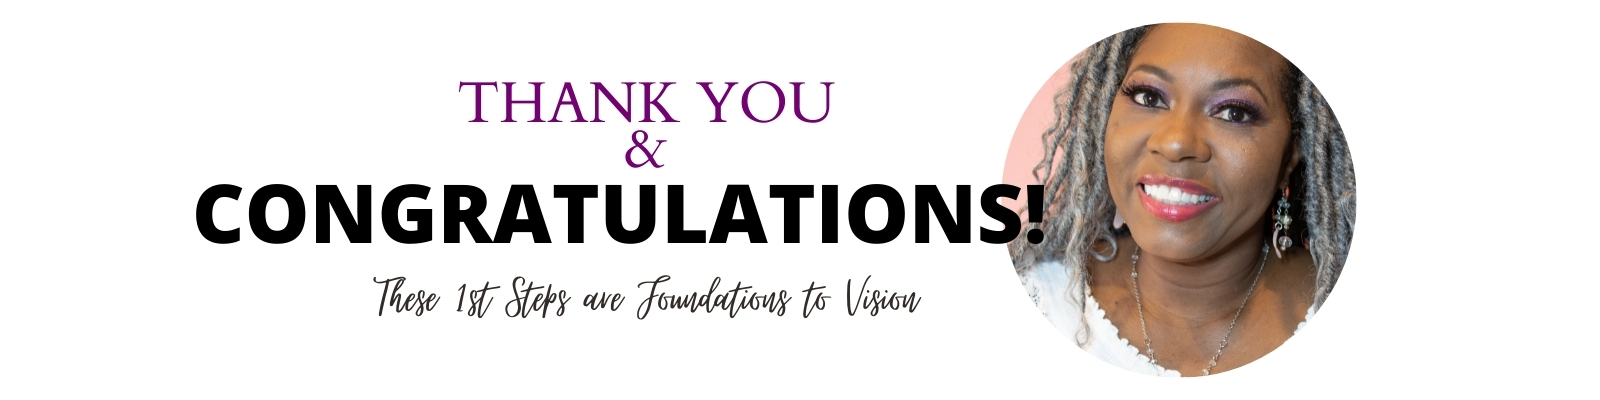 Thank you and congratulations for taking the 1st steps to Branding You Successfully!